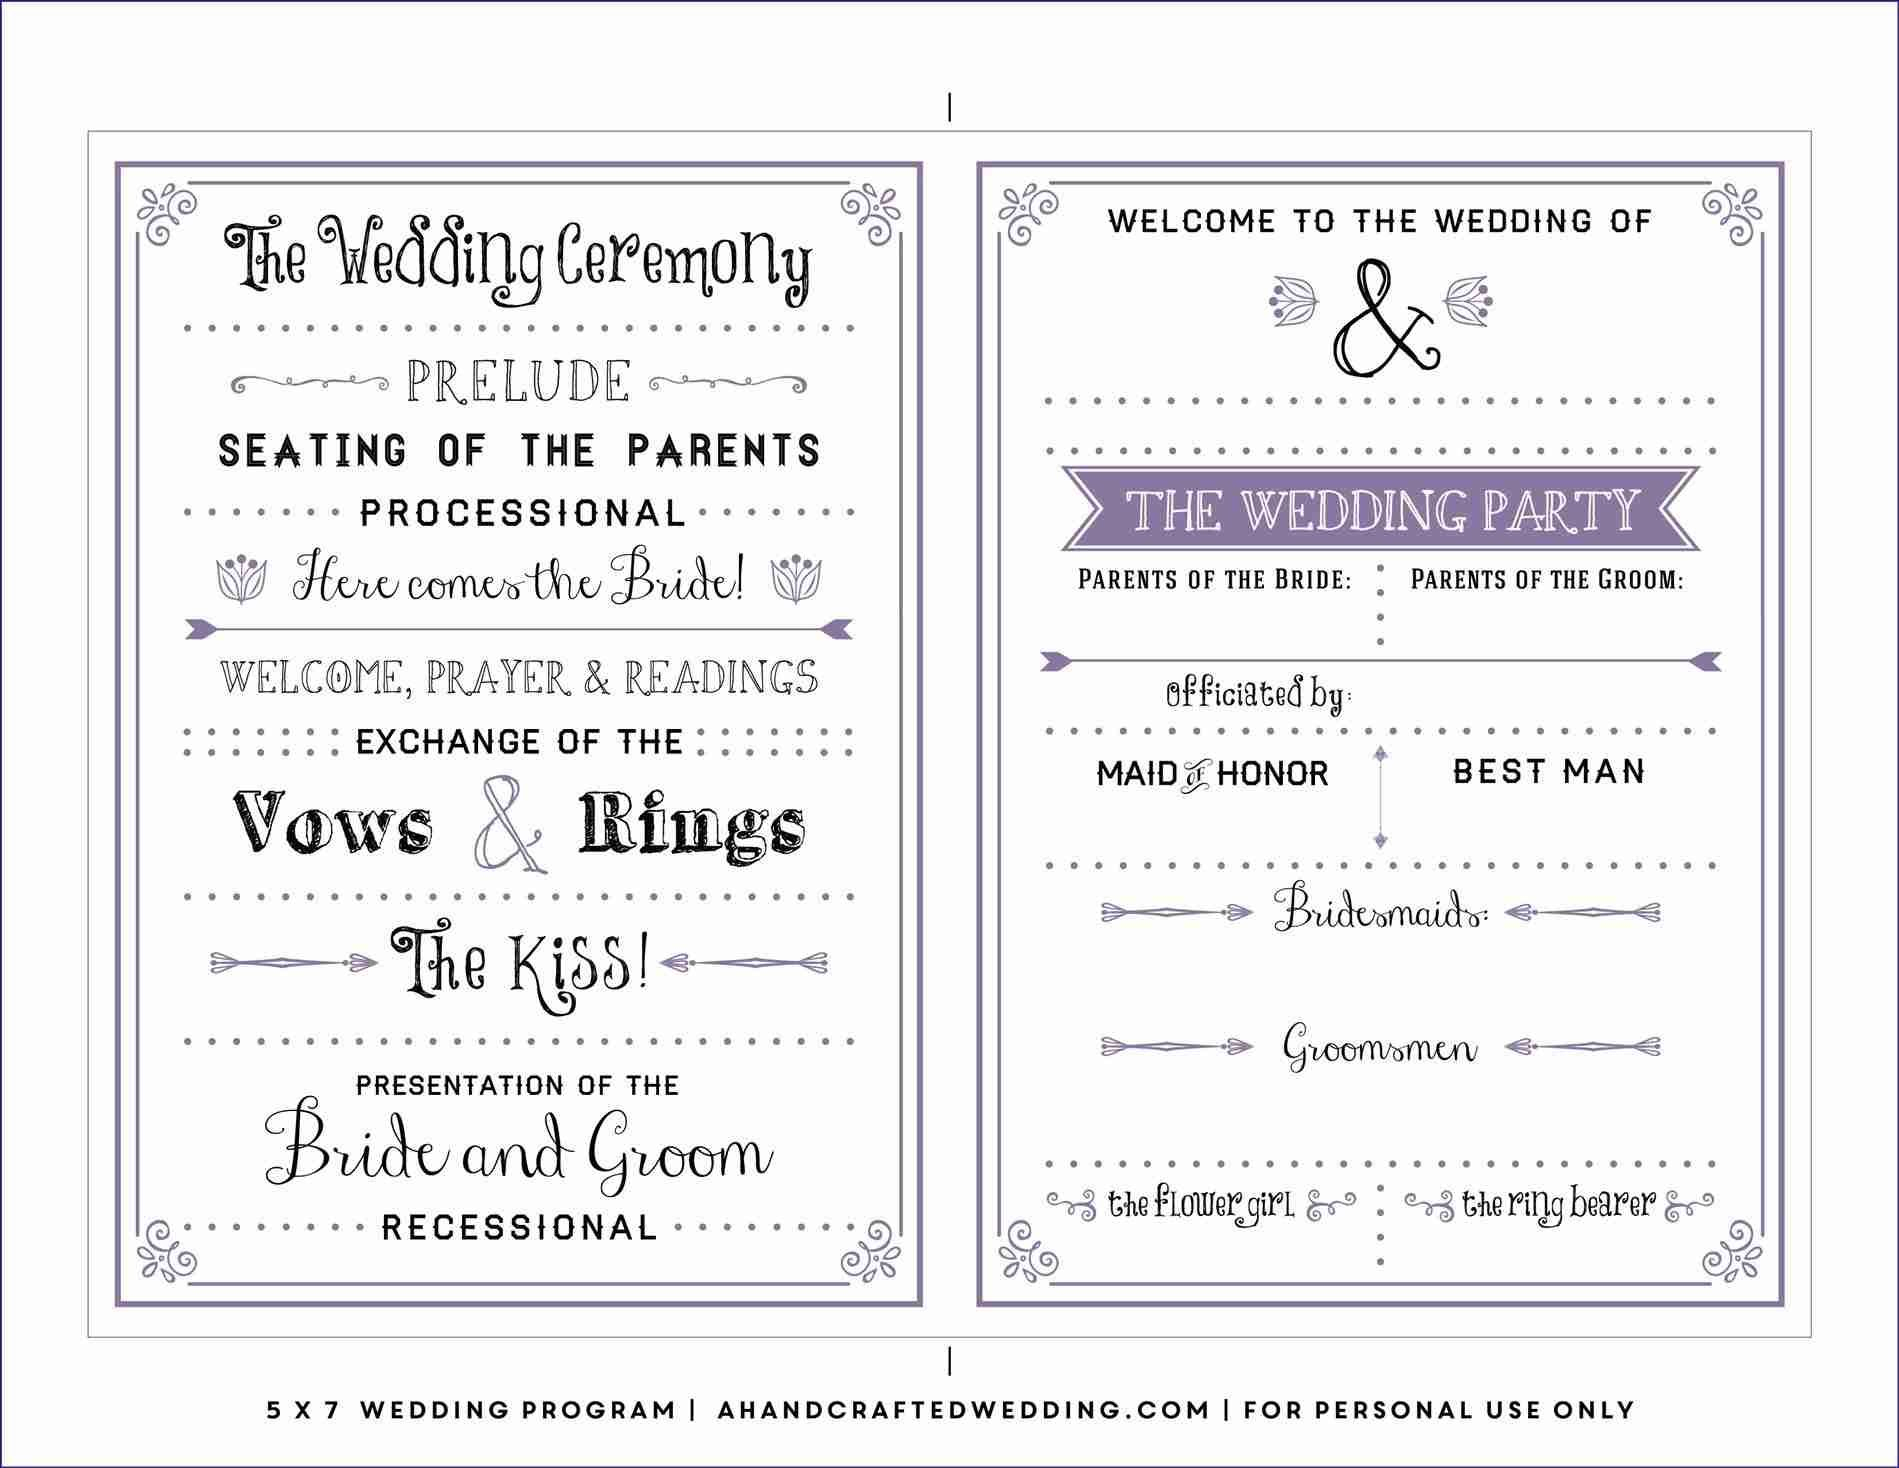 Free Downloadable Wedding Program Template That Can Be Printed - Free Printable Wedding Program Templates Word